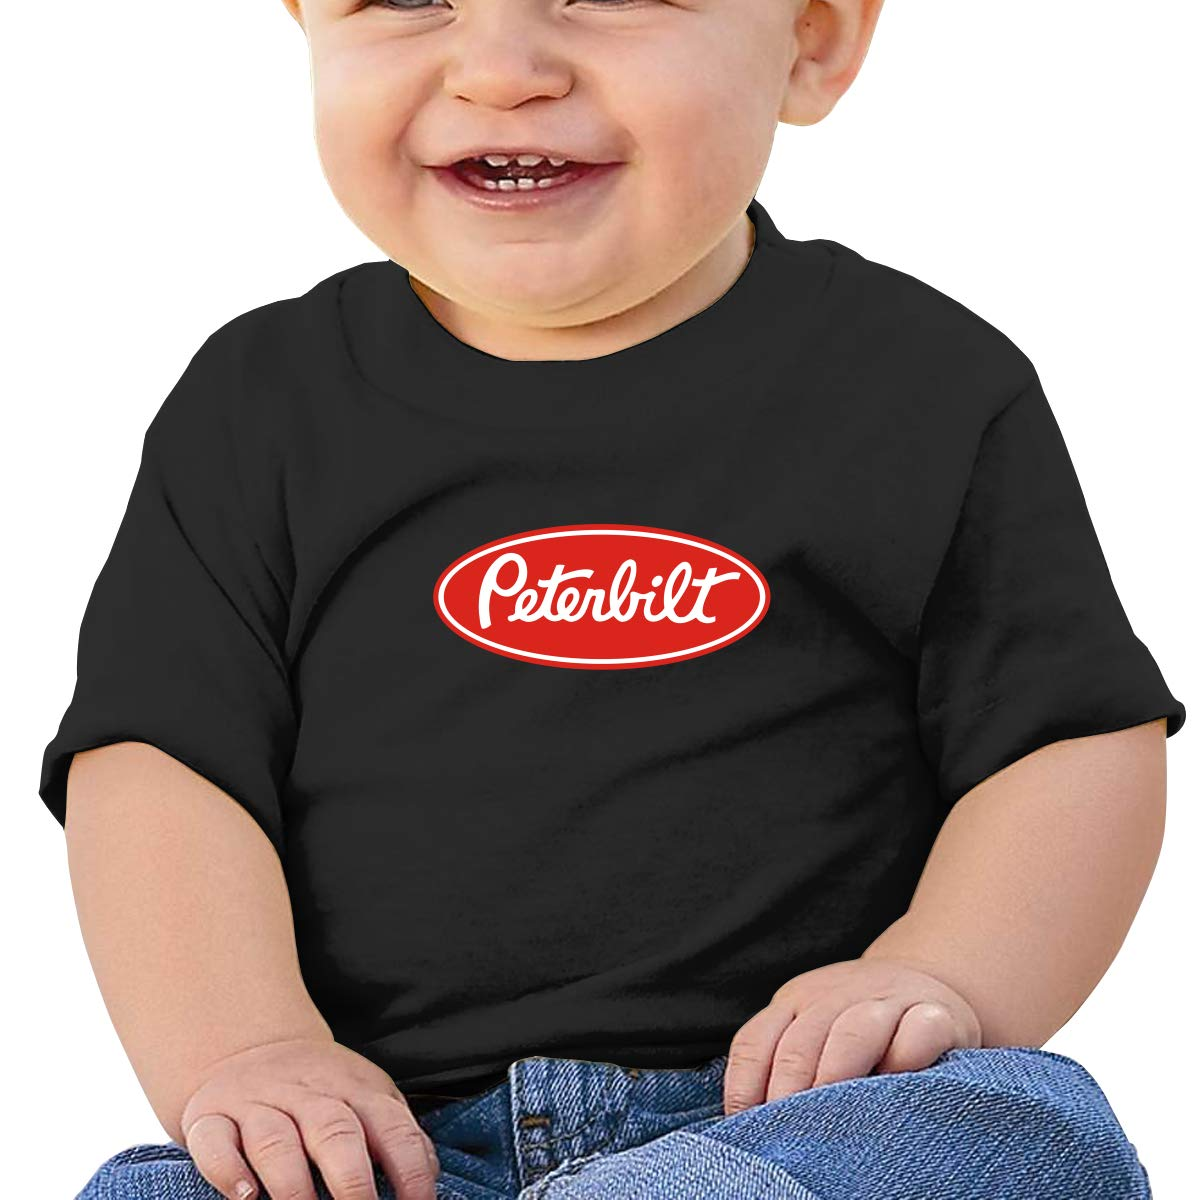 Peter-bilt Truck Cotton Baby Boys T-Shirts,Soft Short Sleeve Crewneck Toddler T-Shirt